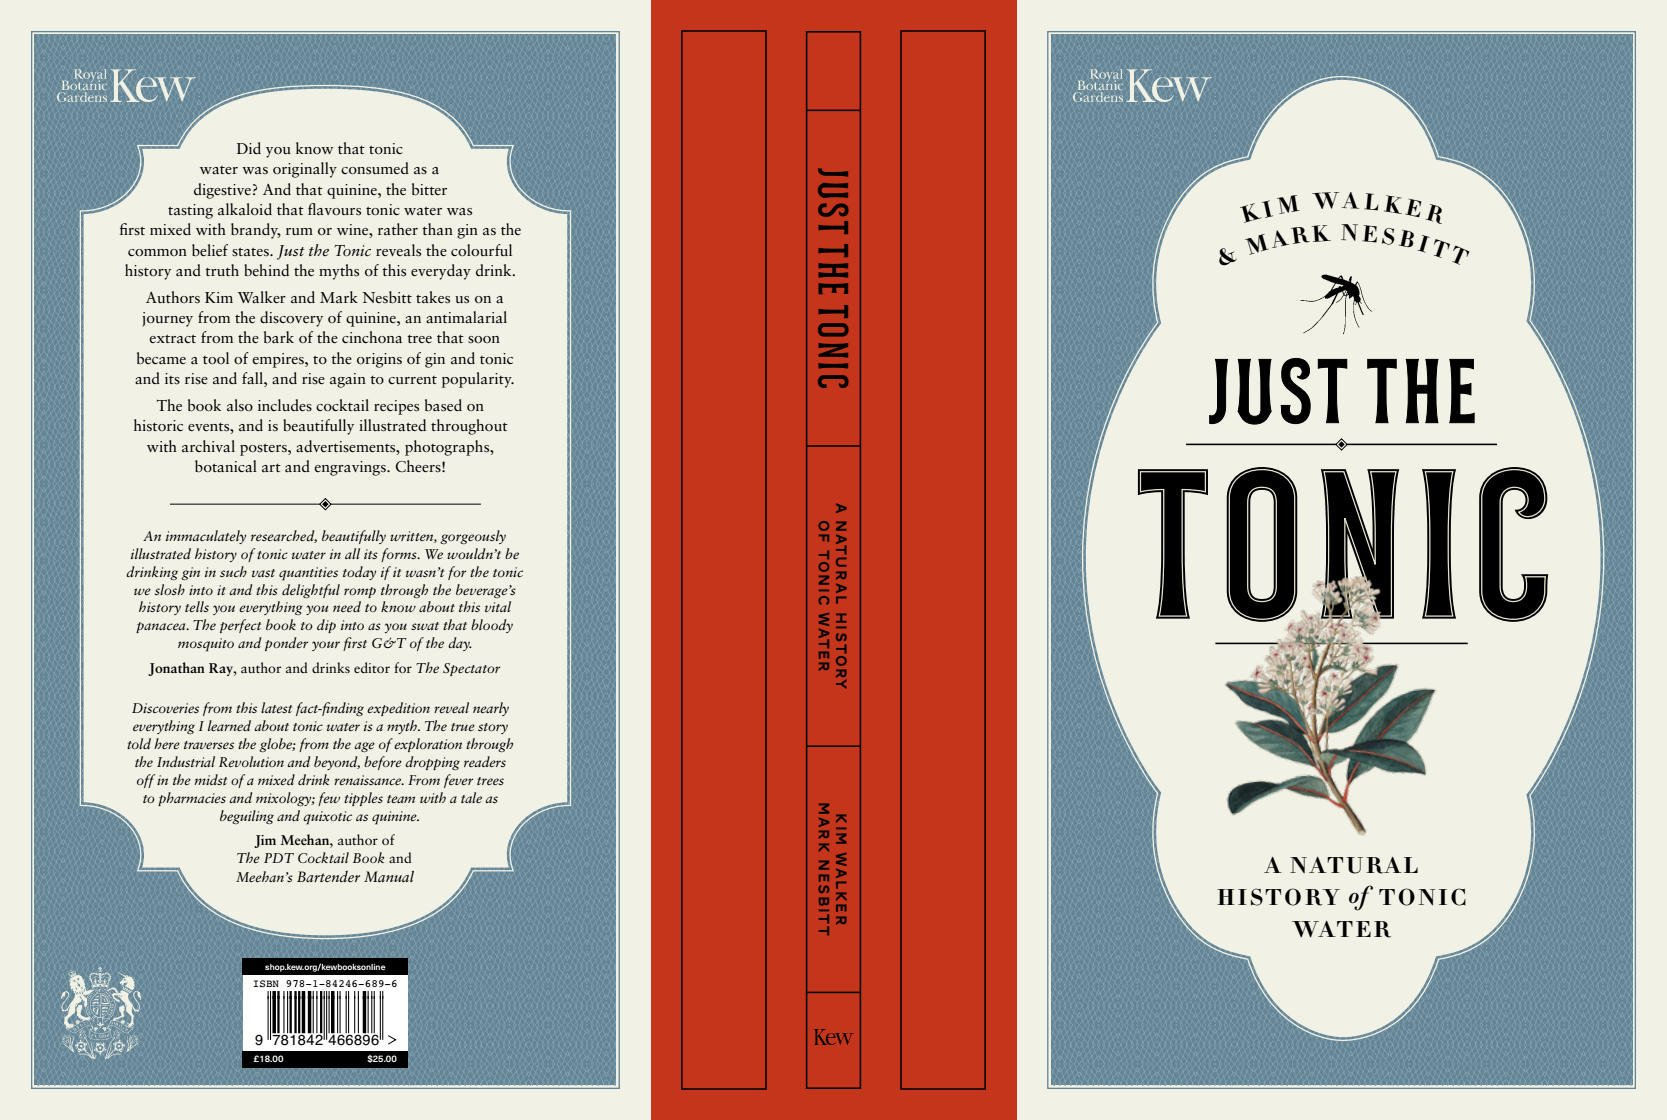 JUST THE TONIC FRONT BACK COVERS.jpeg